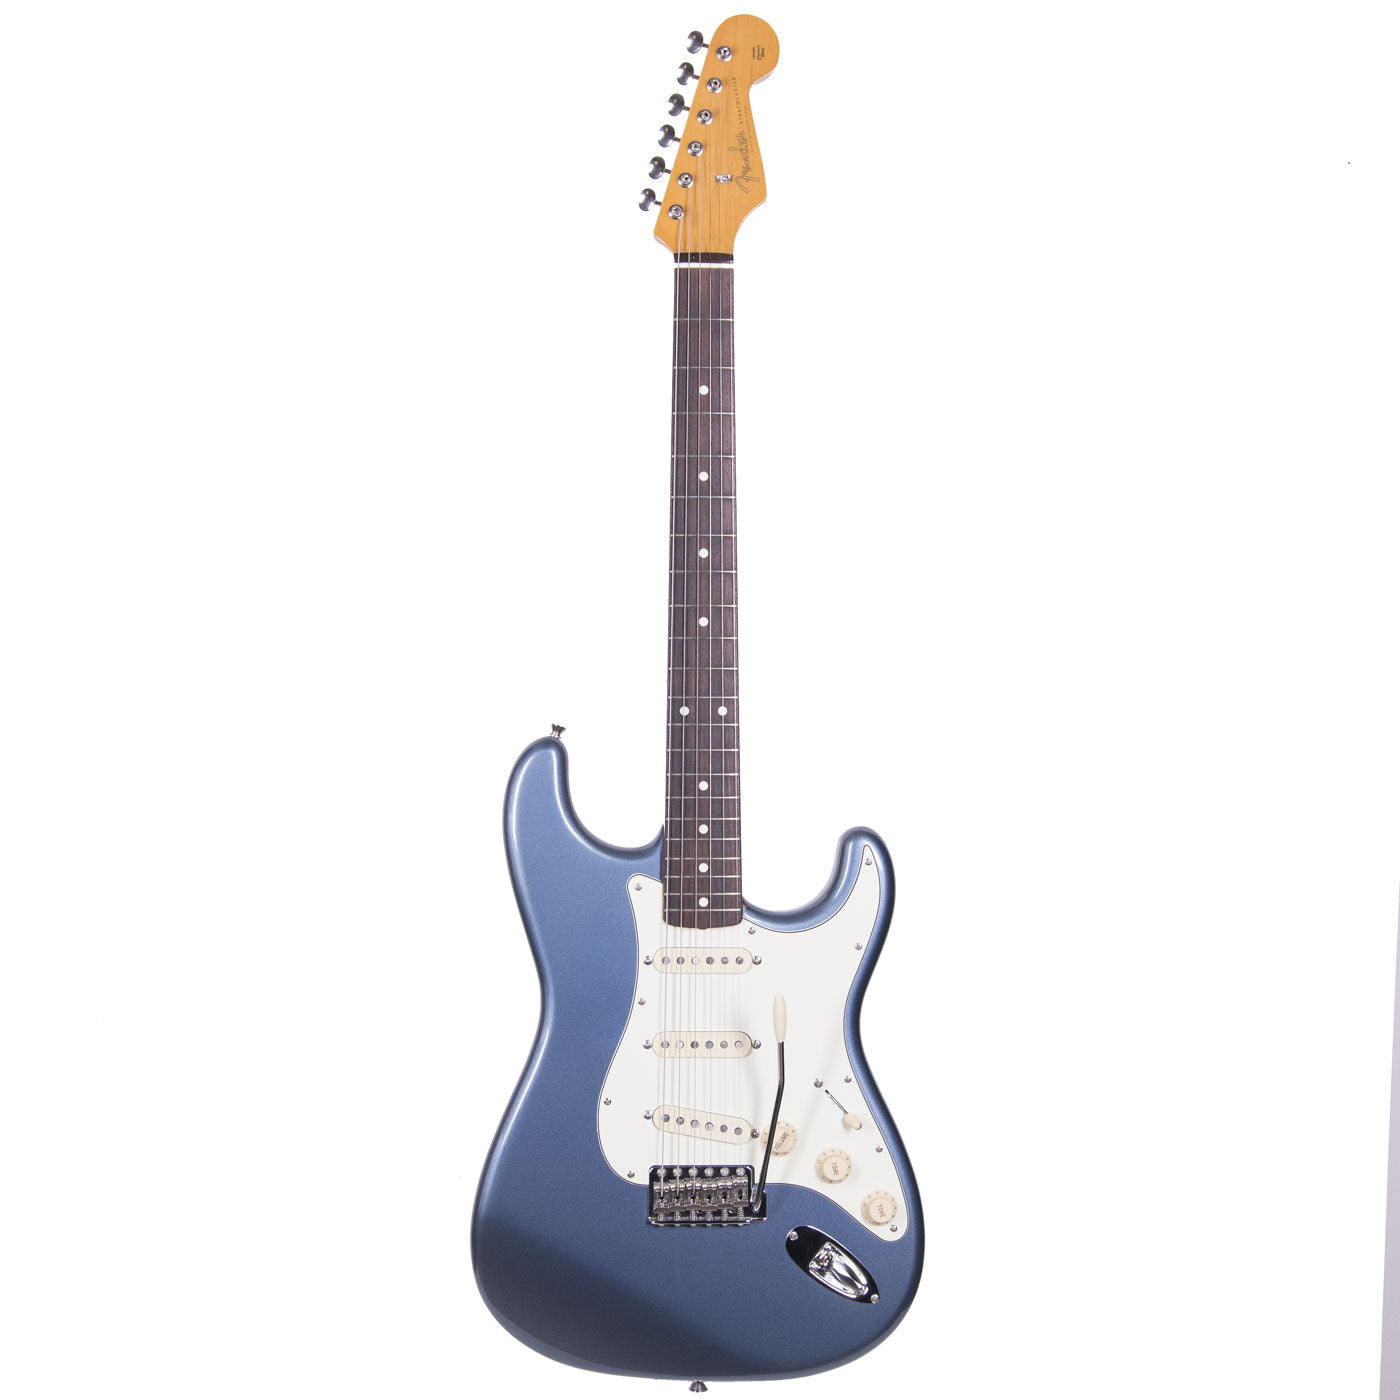 2010 - 2011 Fender Japan Stratocaster, ST62-TX, Old Lake Placid Blue, Texas Special Pickups